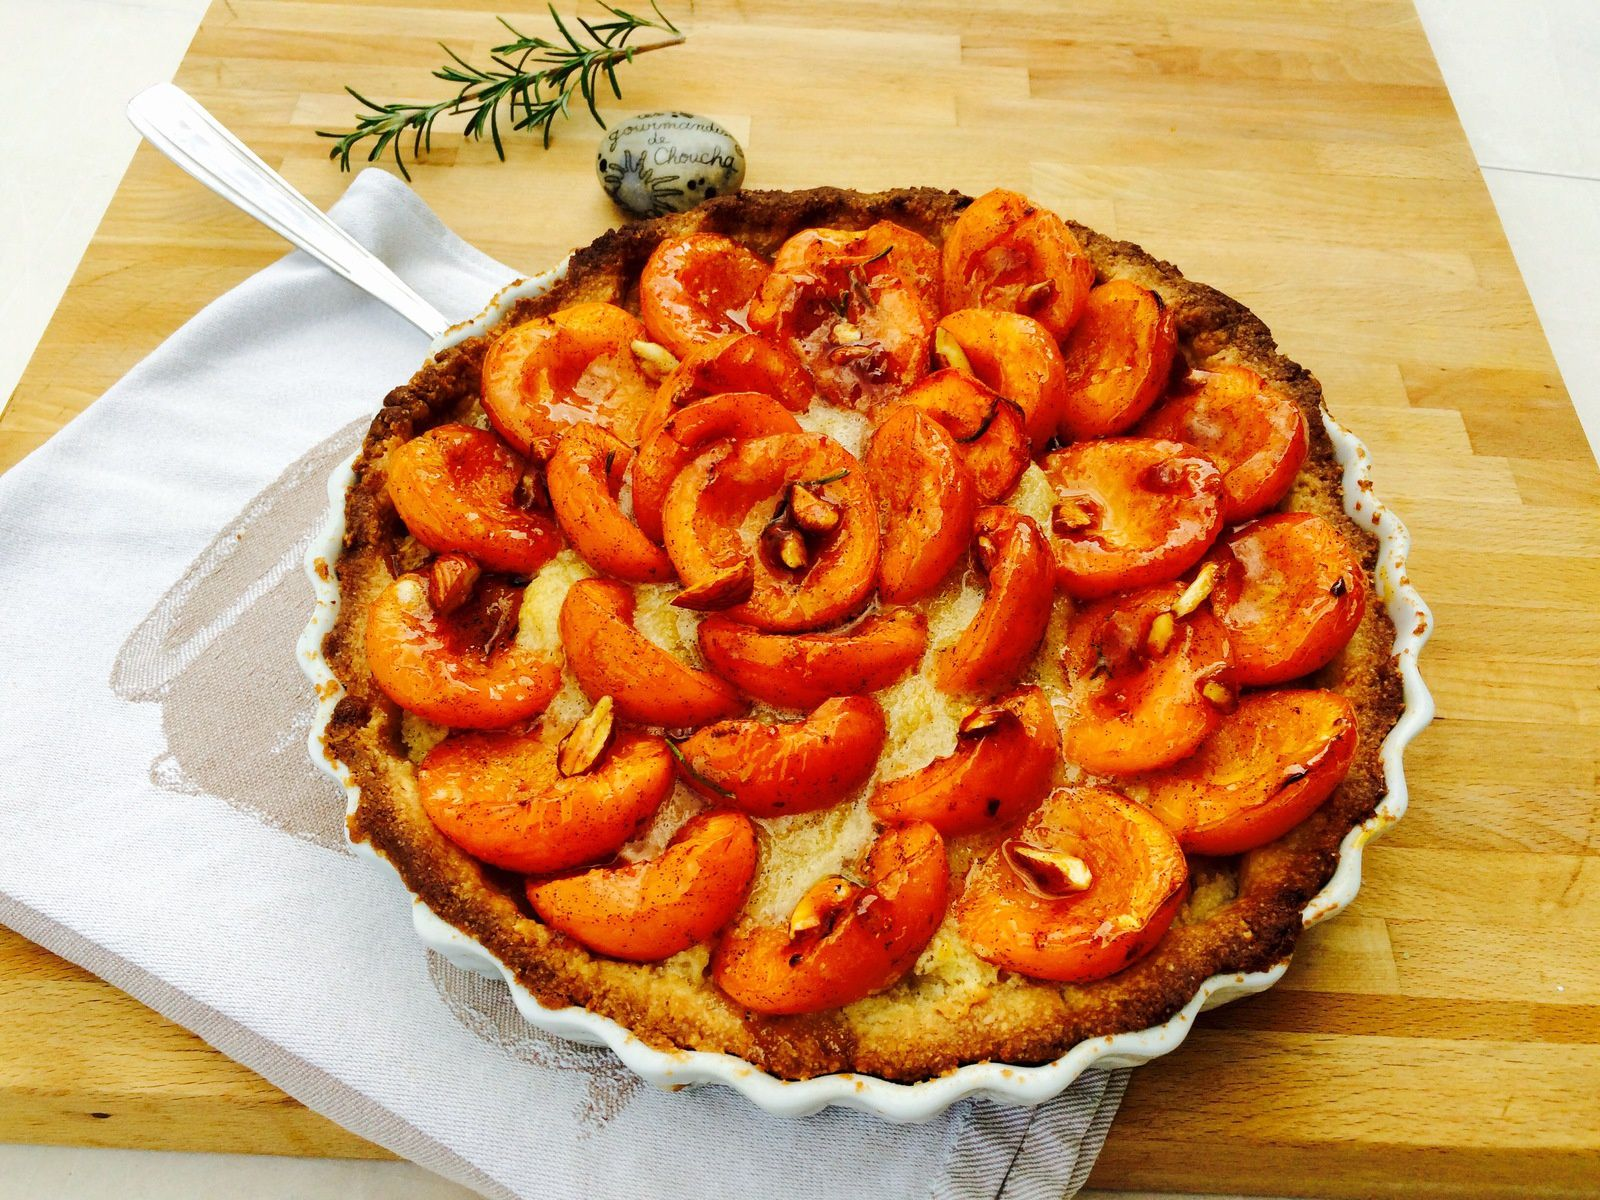 tarte aux abricots vanille romarin et amandes croquantes les gourmandises de choucha. Black Bedroom Furniture Sets. Home Design Ideas